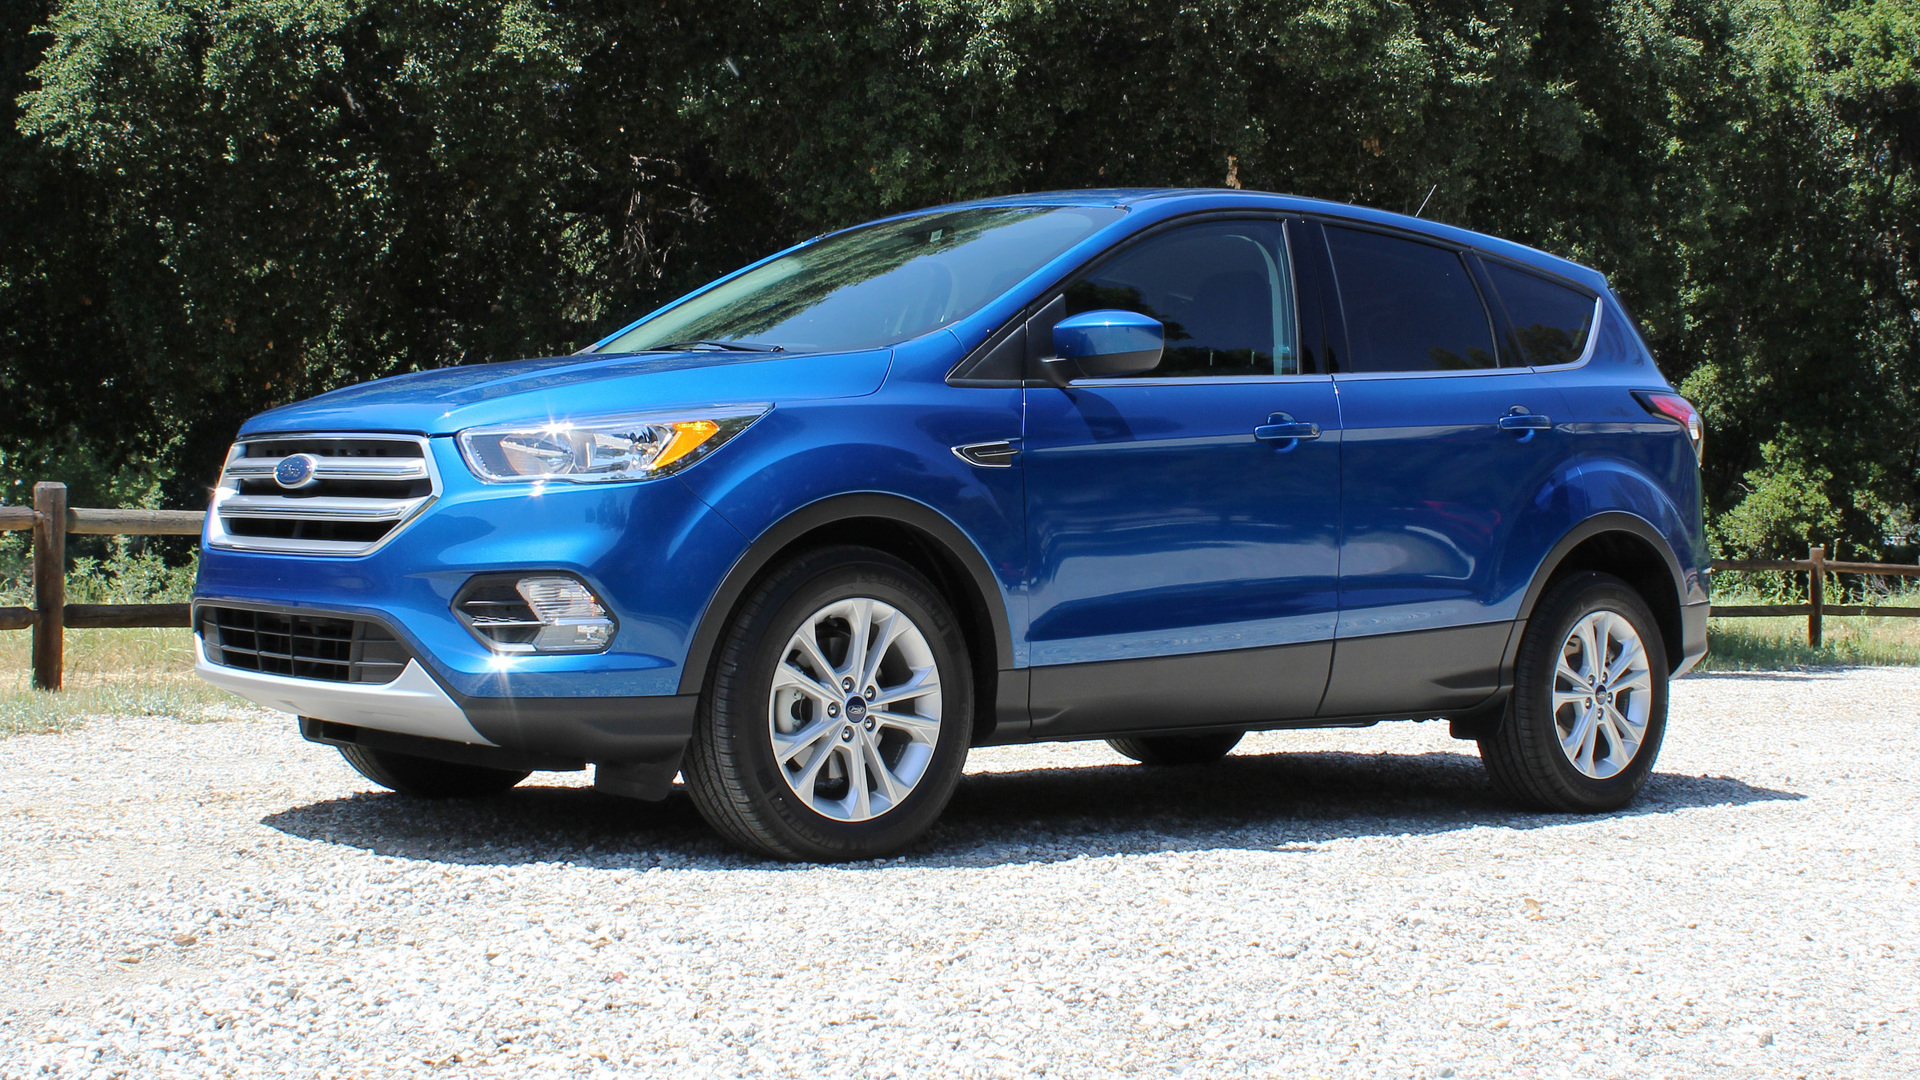 2017 Ford Escape Towing Capacity >> First Drive 2017 Ford Escape